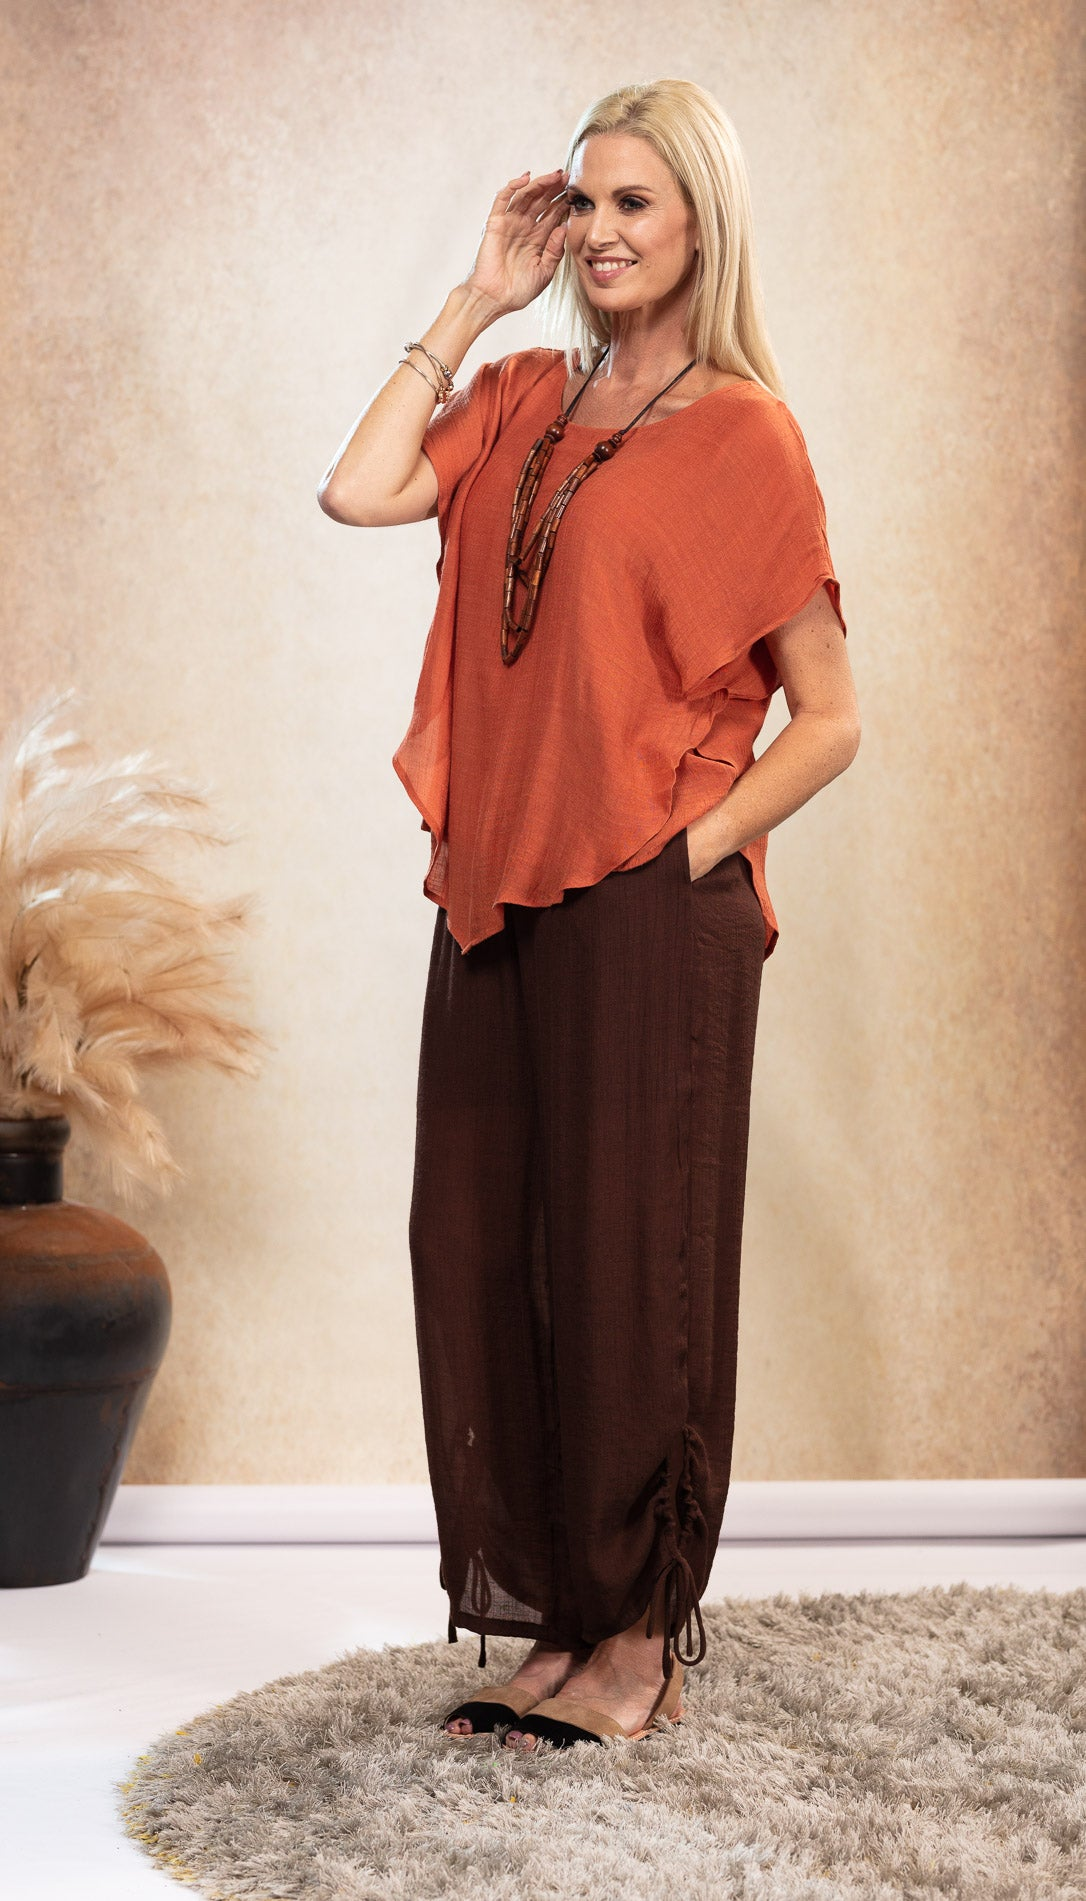 Bamboo Top earthy rust orange colour. Angel wing top. Burnt orange top. Harem pants chocolate brown colour. Long Bamboo Pants.